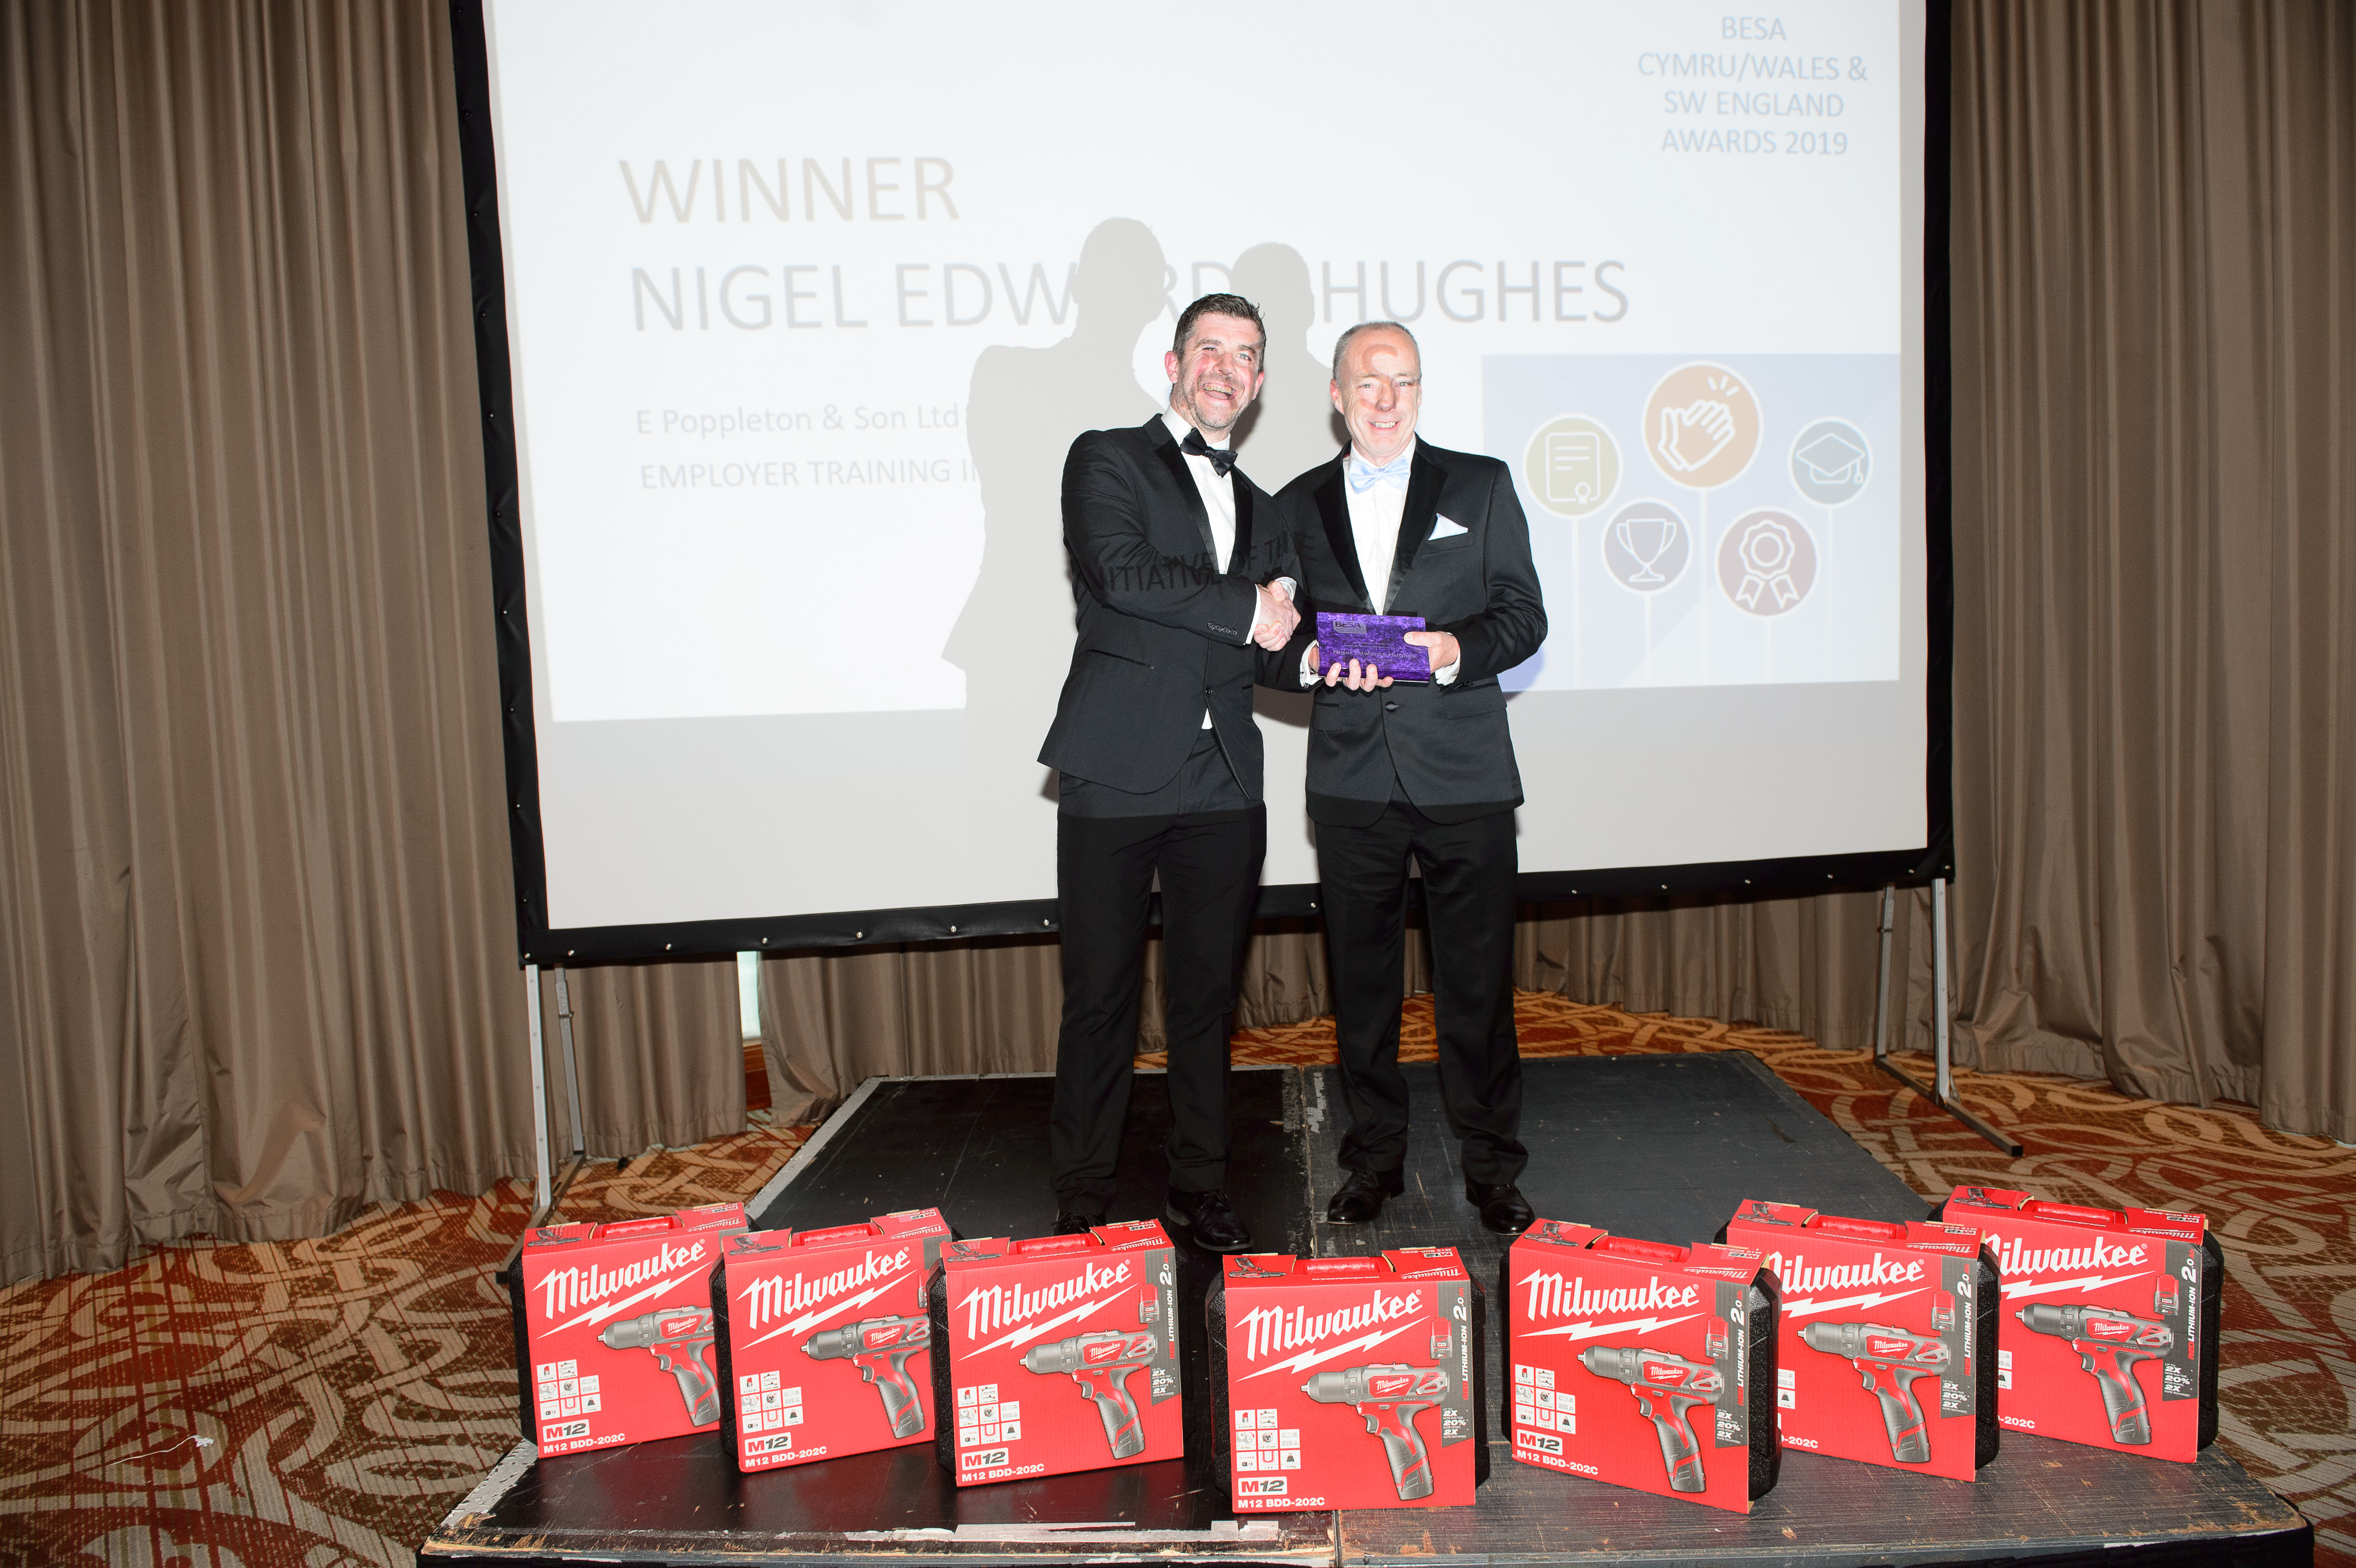 Employer Training Initiative of the Year, Nigel Edward-Hughes, E Poppleton & Son Ltd